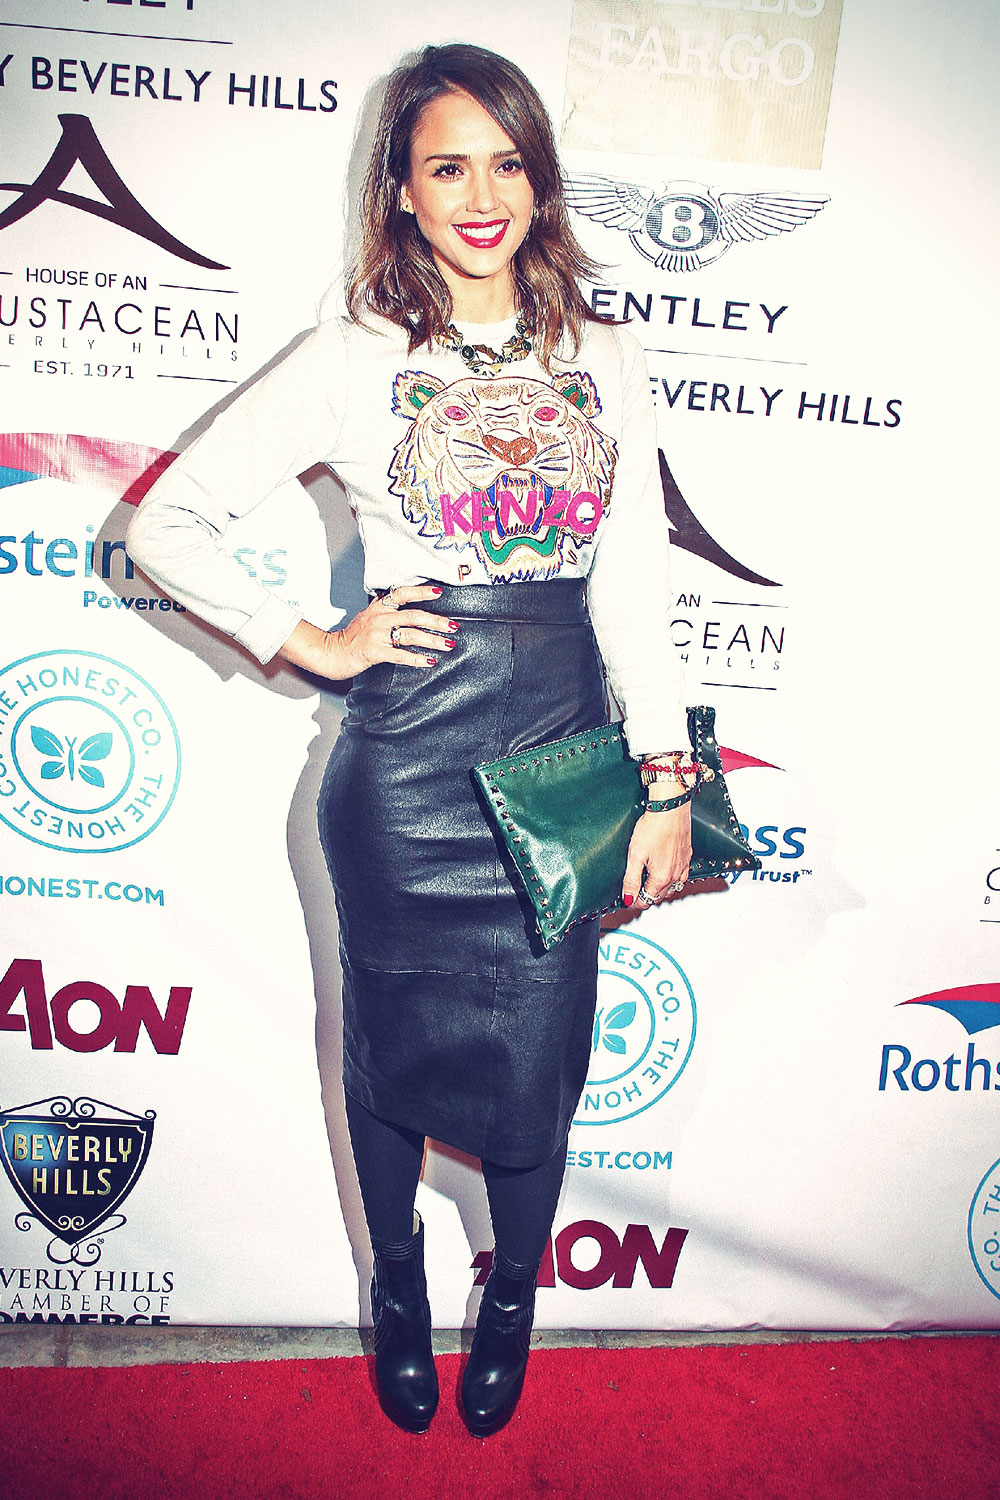 Jessica Alba attends the Beverly Hills Chamber of Commerce